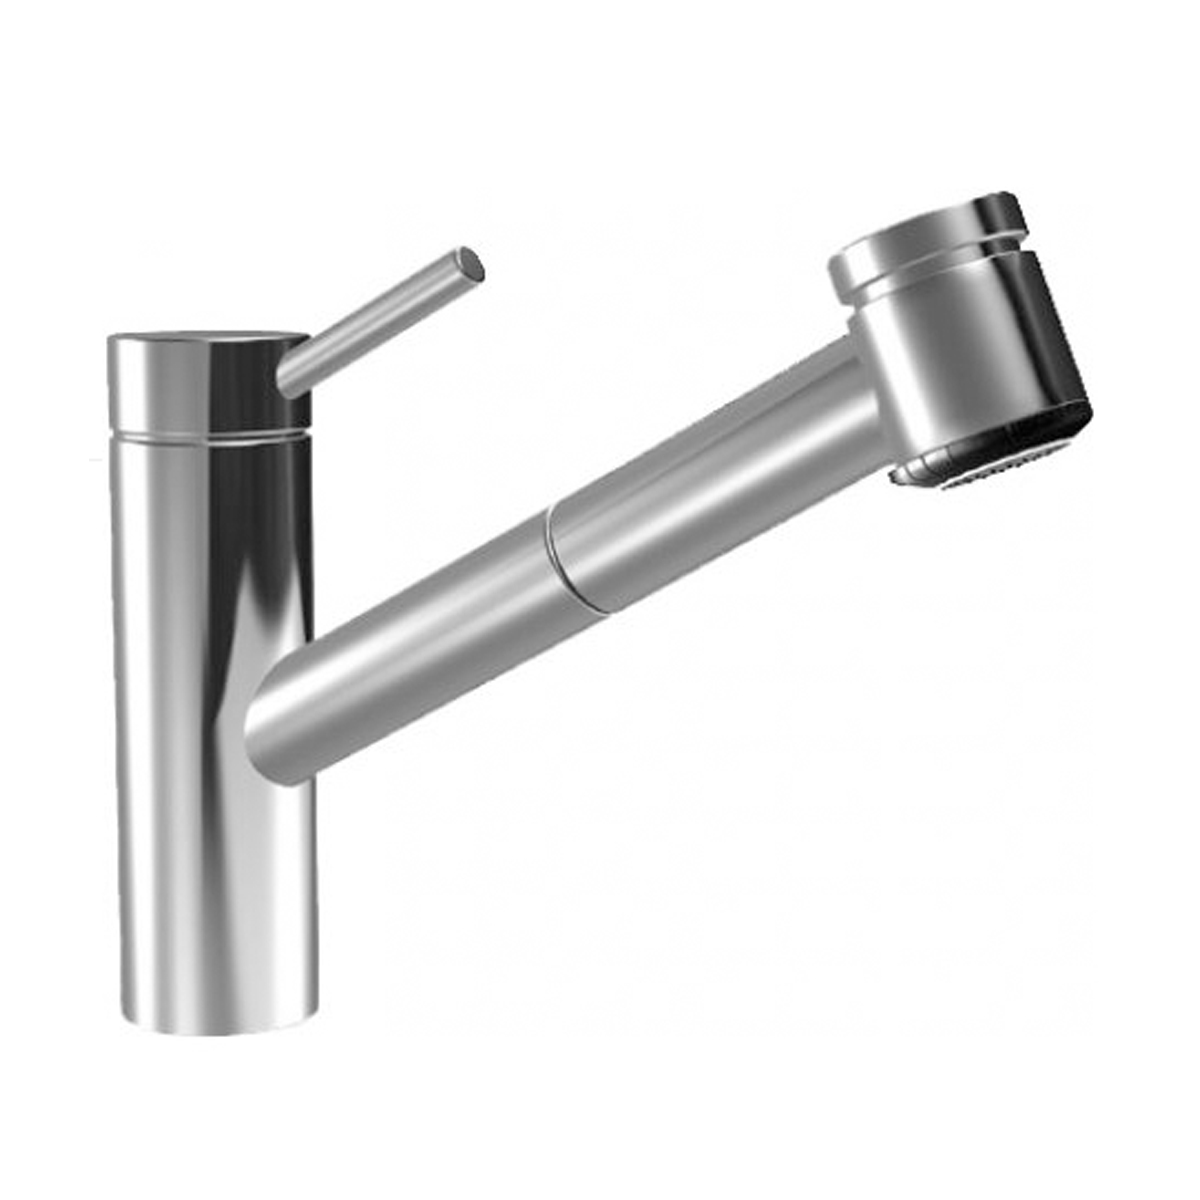 KWC 10.271.033.700 Suprimo Series Pull Out Spray Stainless Steel Kitchen Faucet